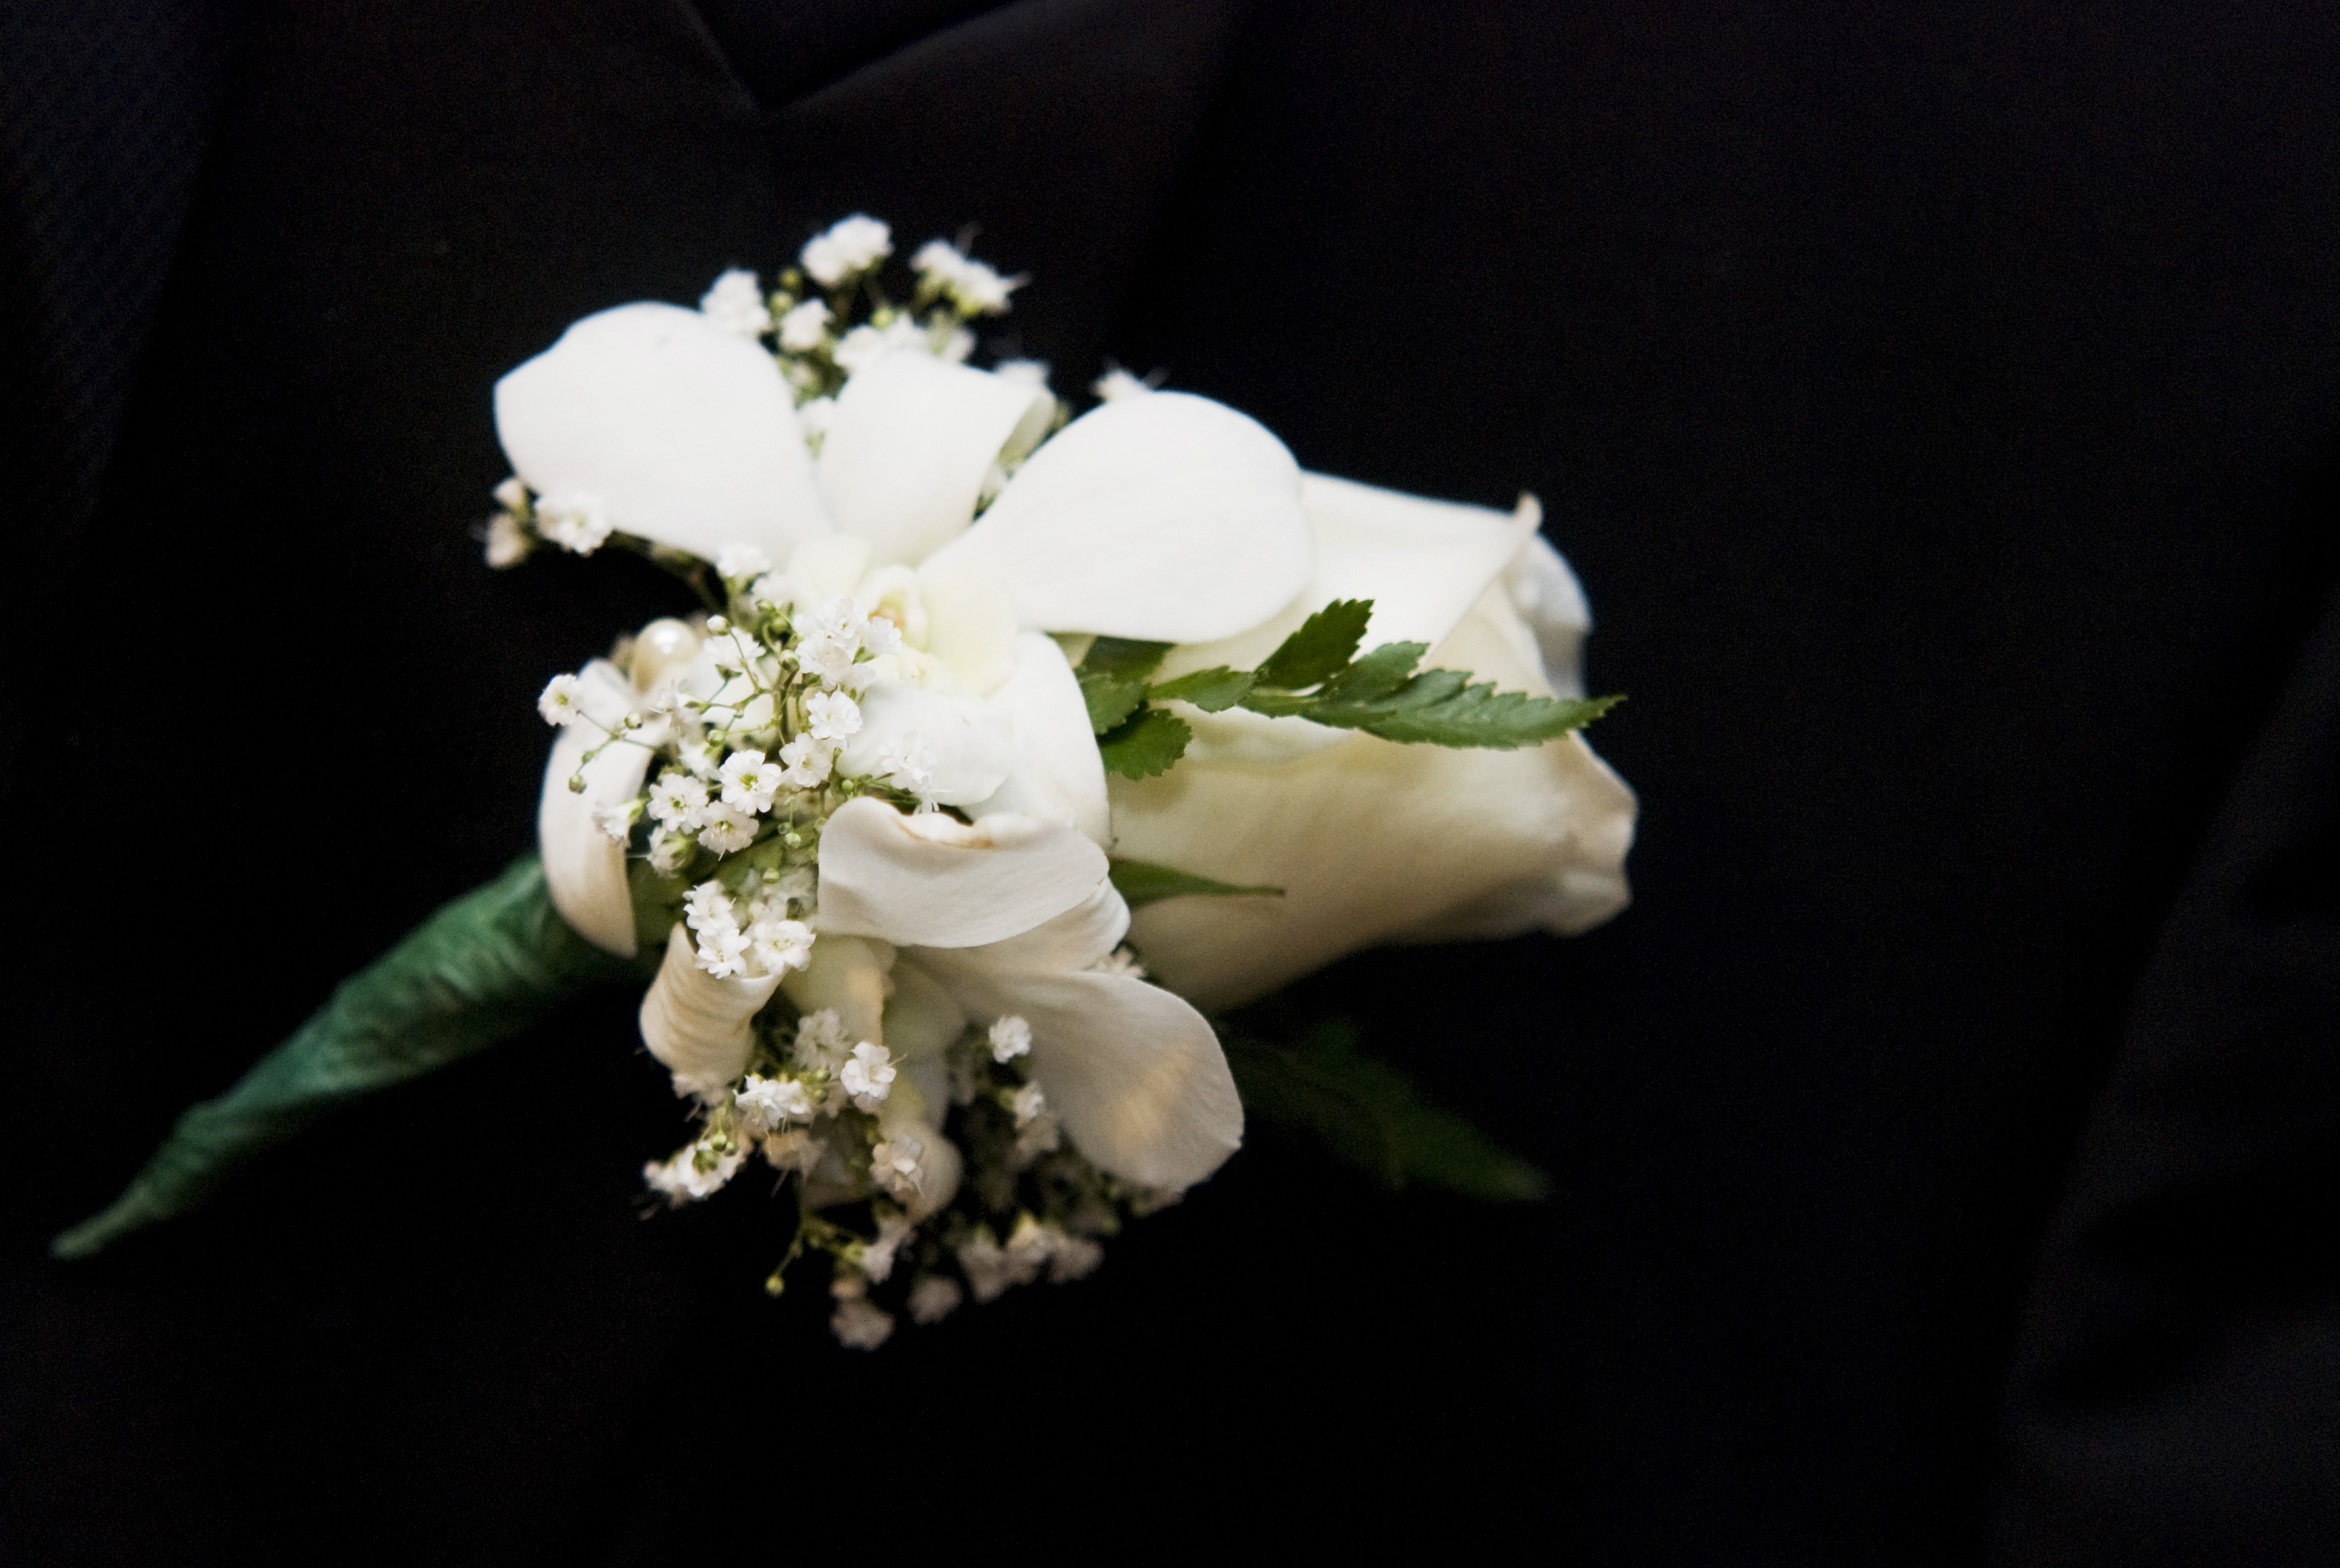 Flowers & Decor, white, Boutonnieres, Flowers, Groom, Boutonniere, Pre-ceremony, Innovative photography services